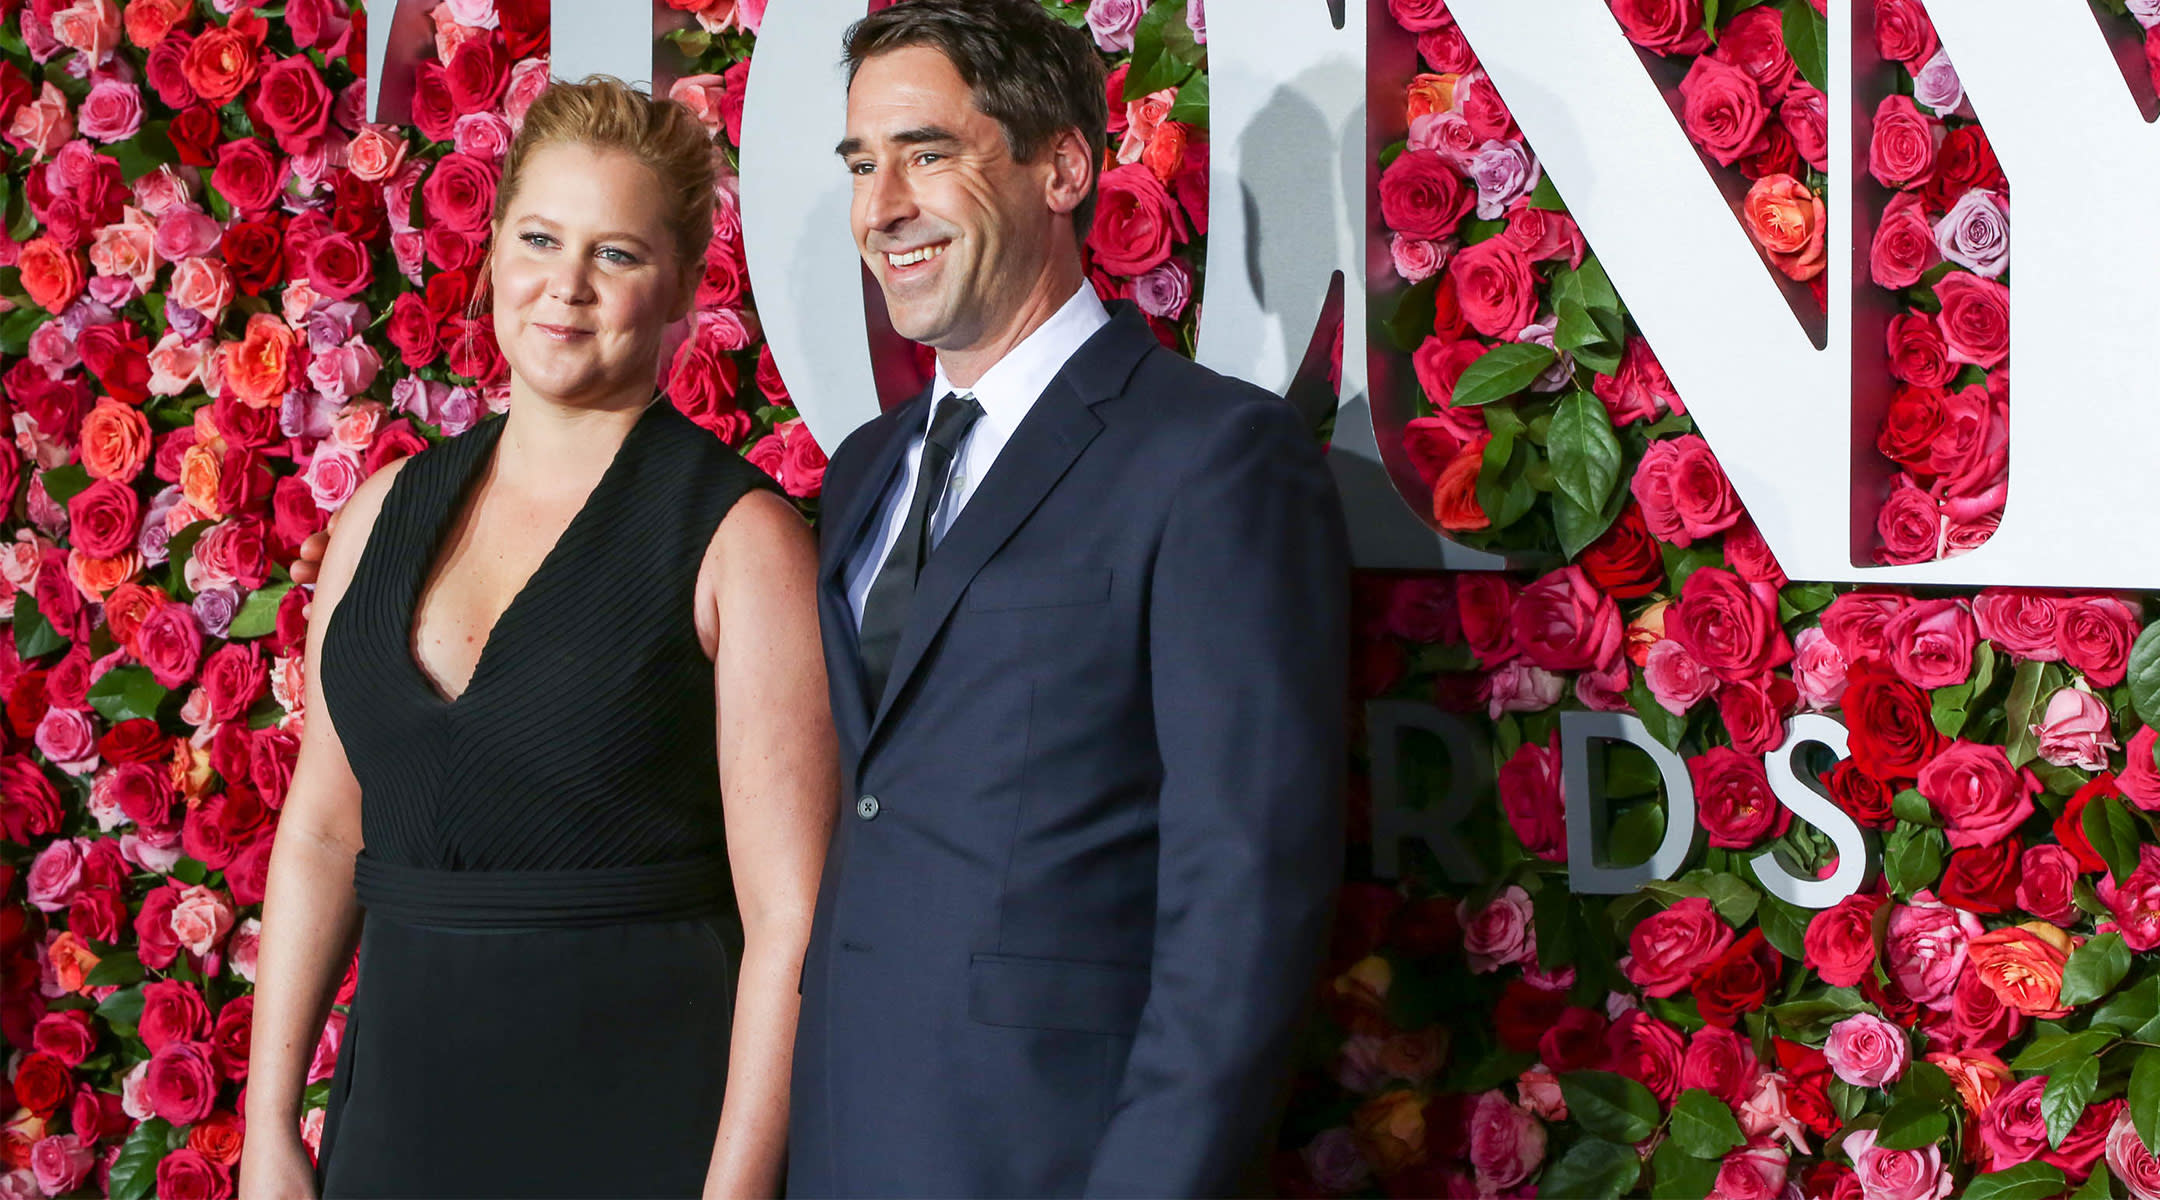 amy schumer announces she's pregnant, pictured with her husband chris fischer